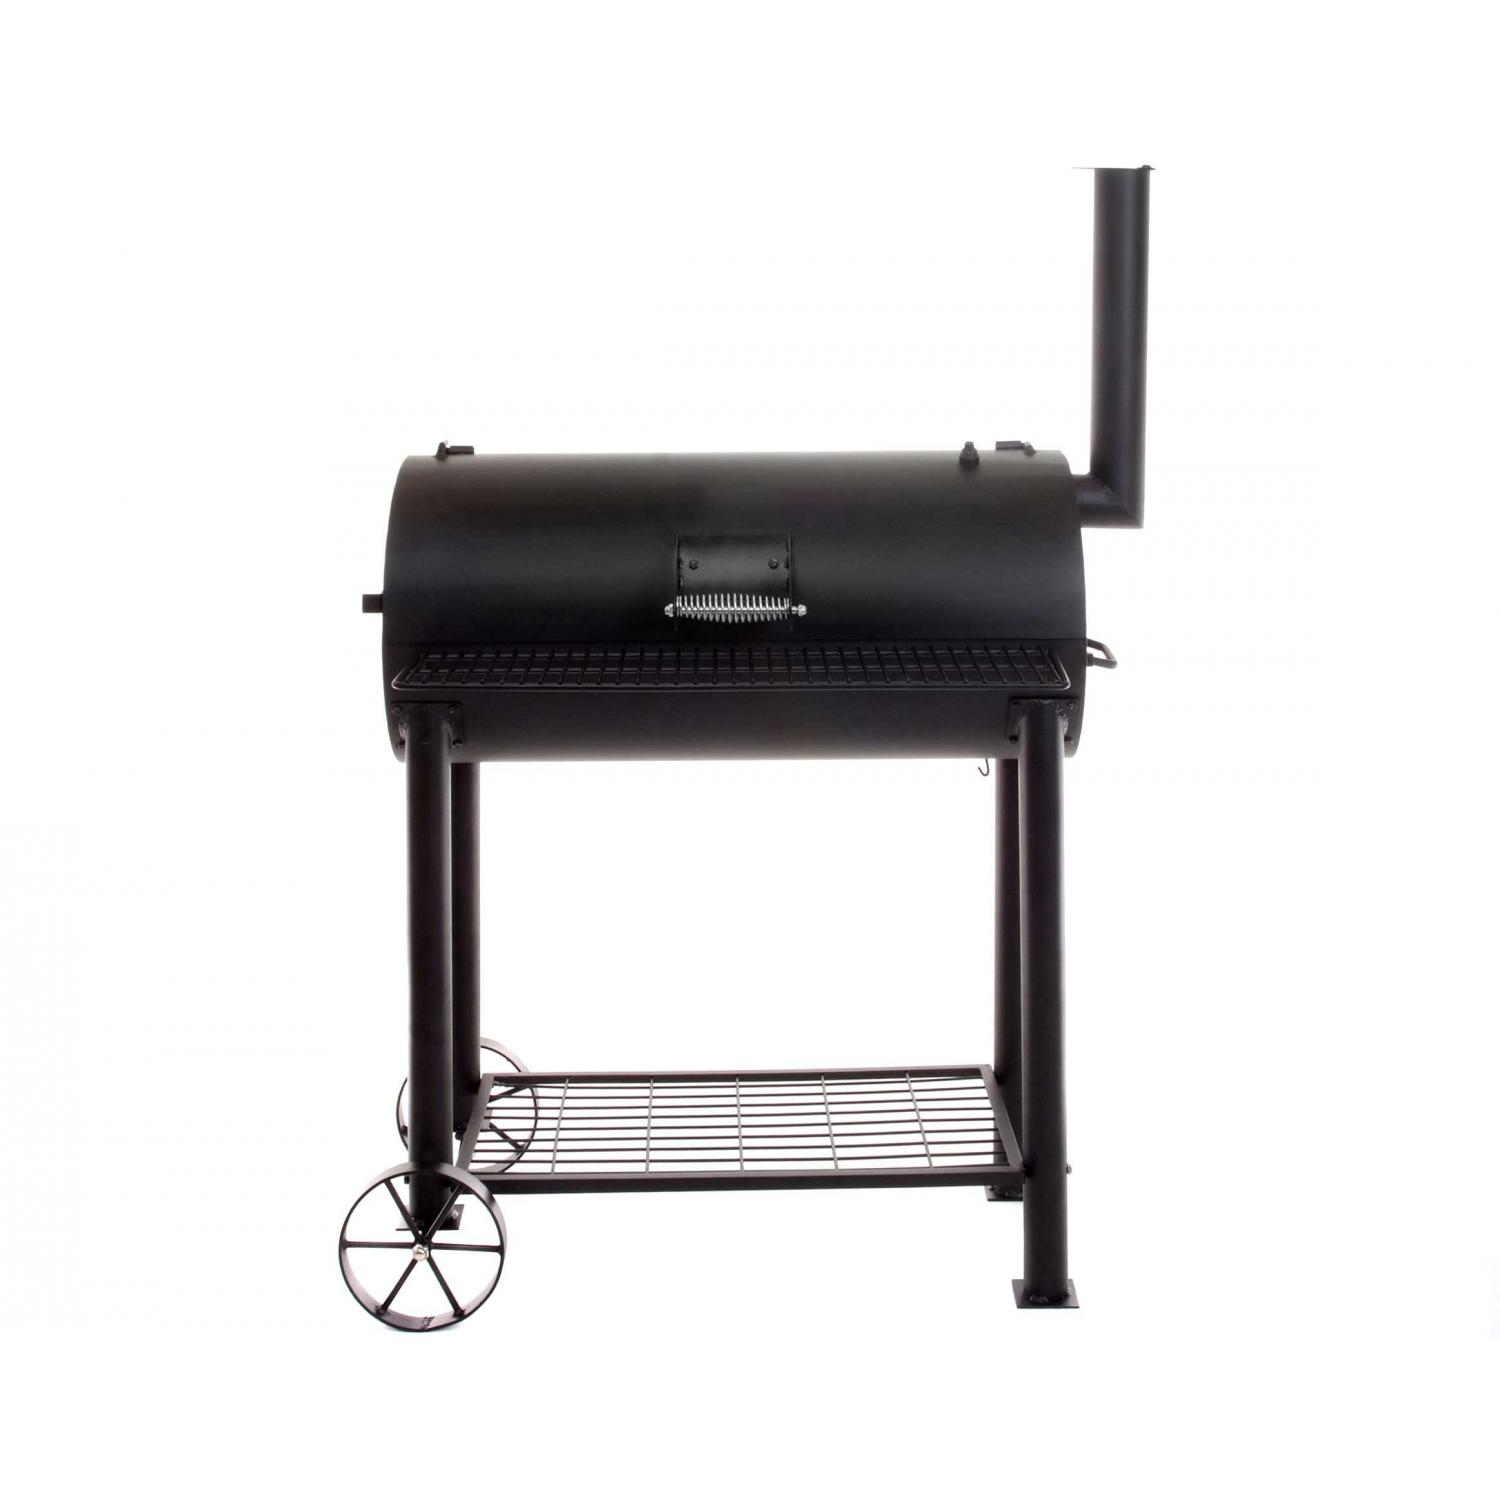 Flame Master Bbq.Online Medina River Grill Master Large Bbq Charcoal Grill Sales Here